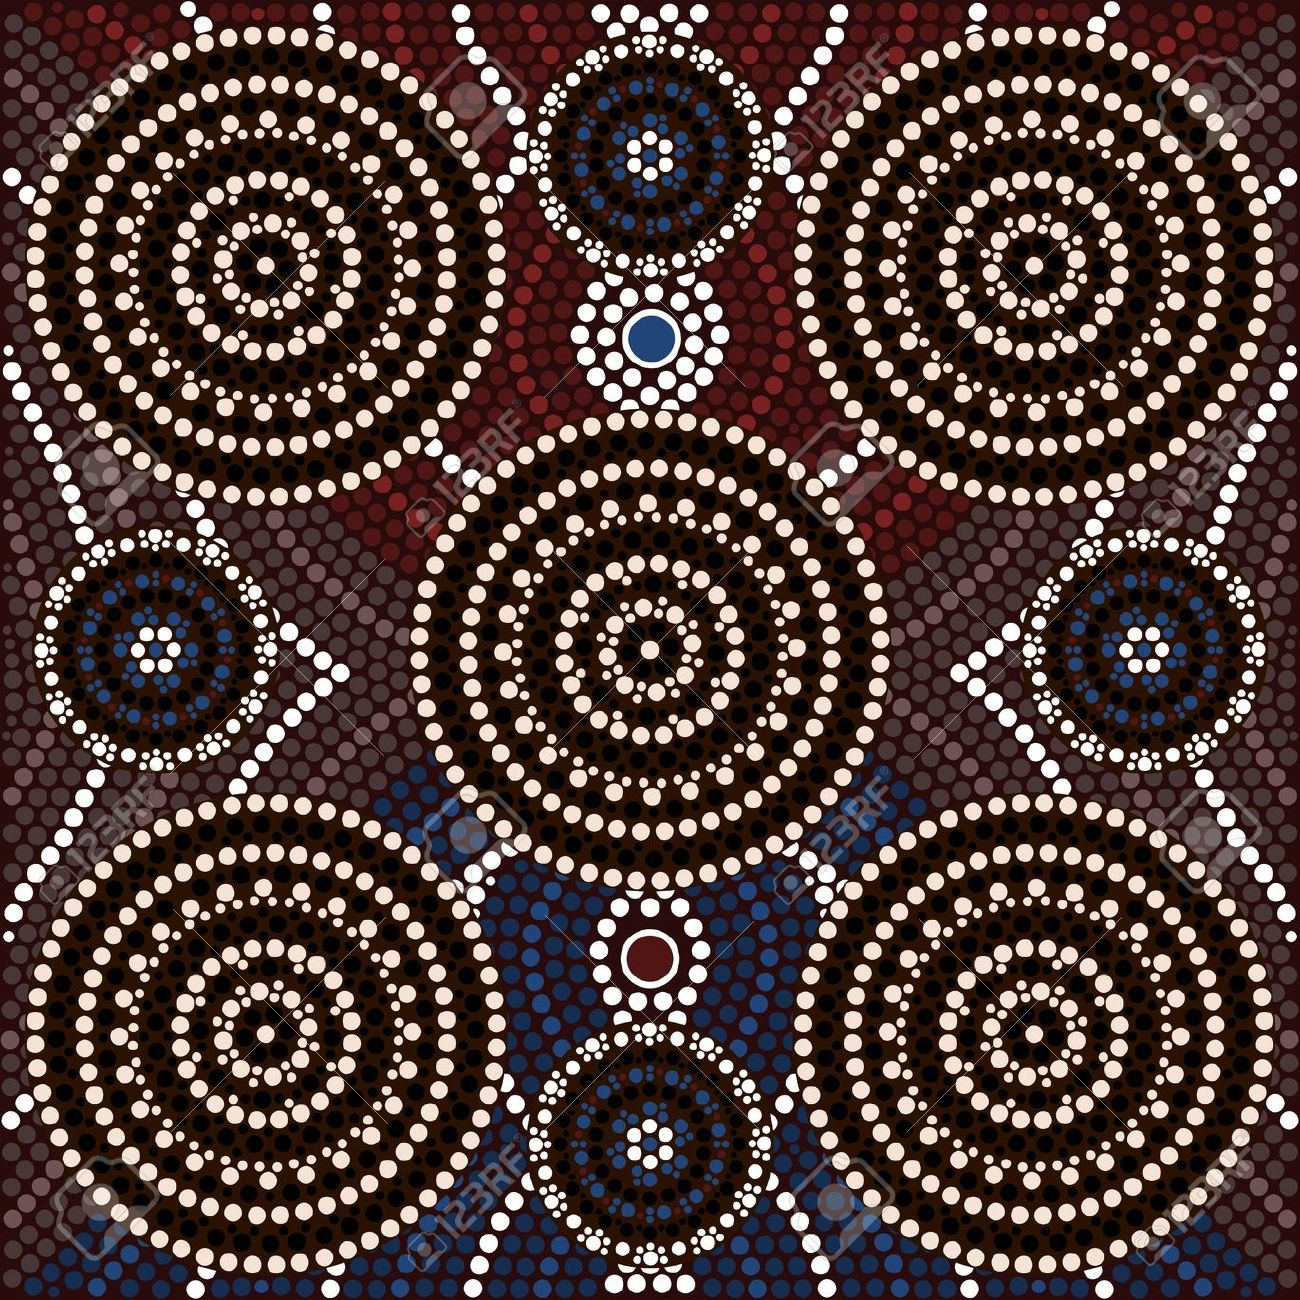 A Illustration Based On Aboriginal Style Of Dot Painting Depicting.